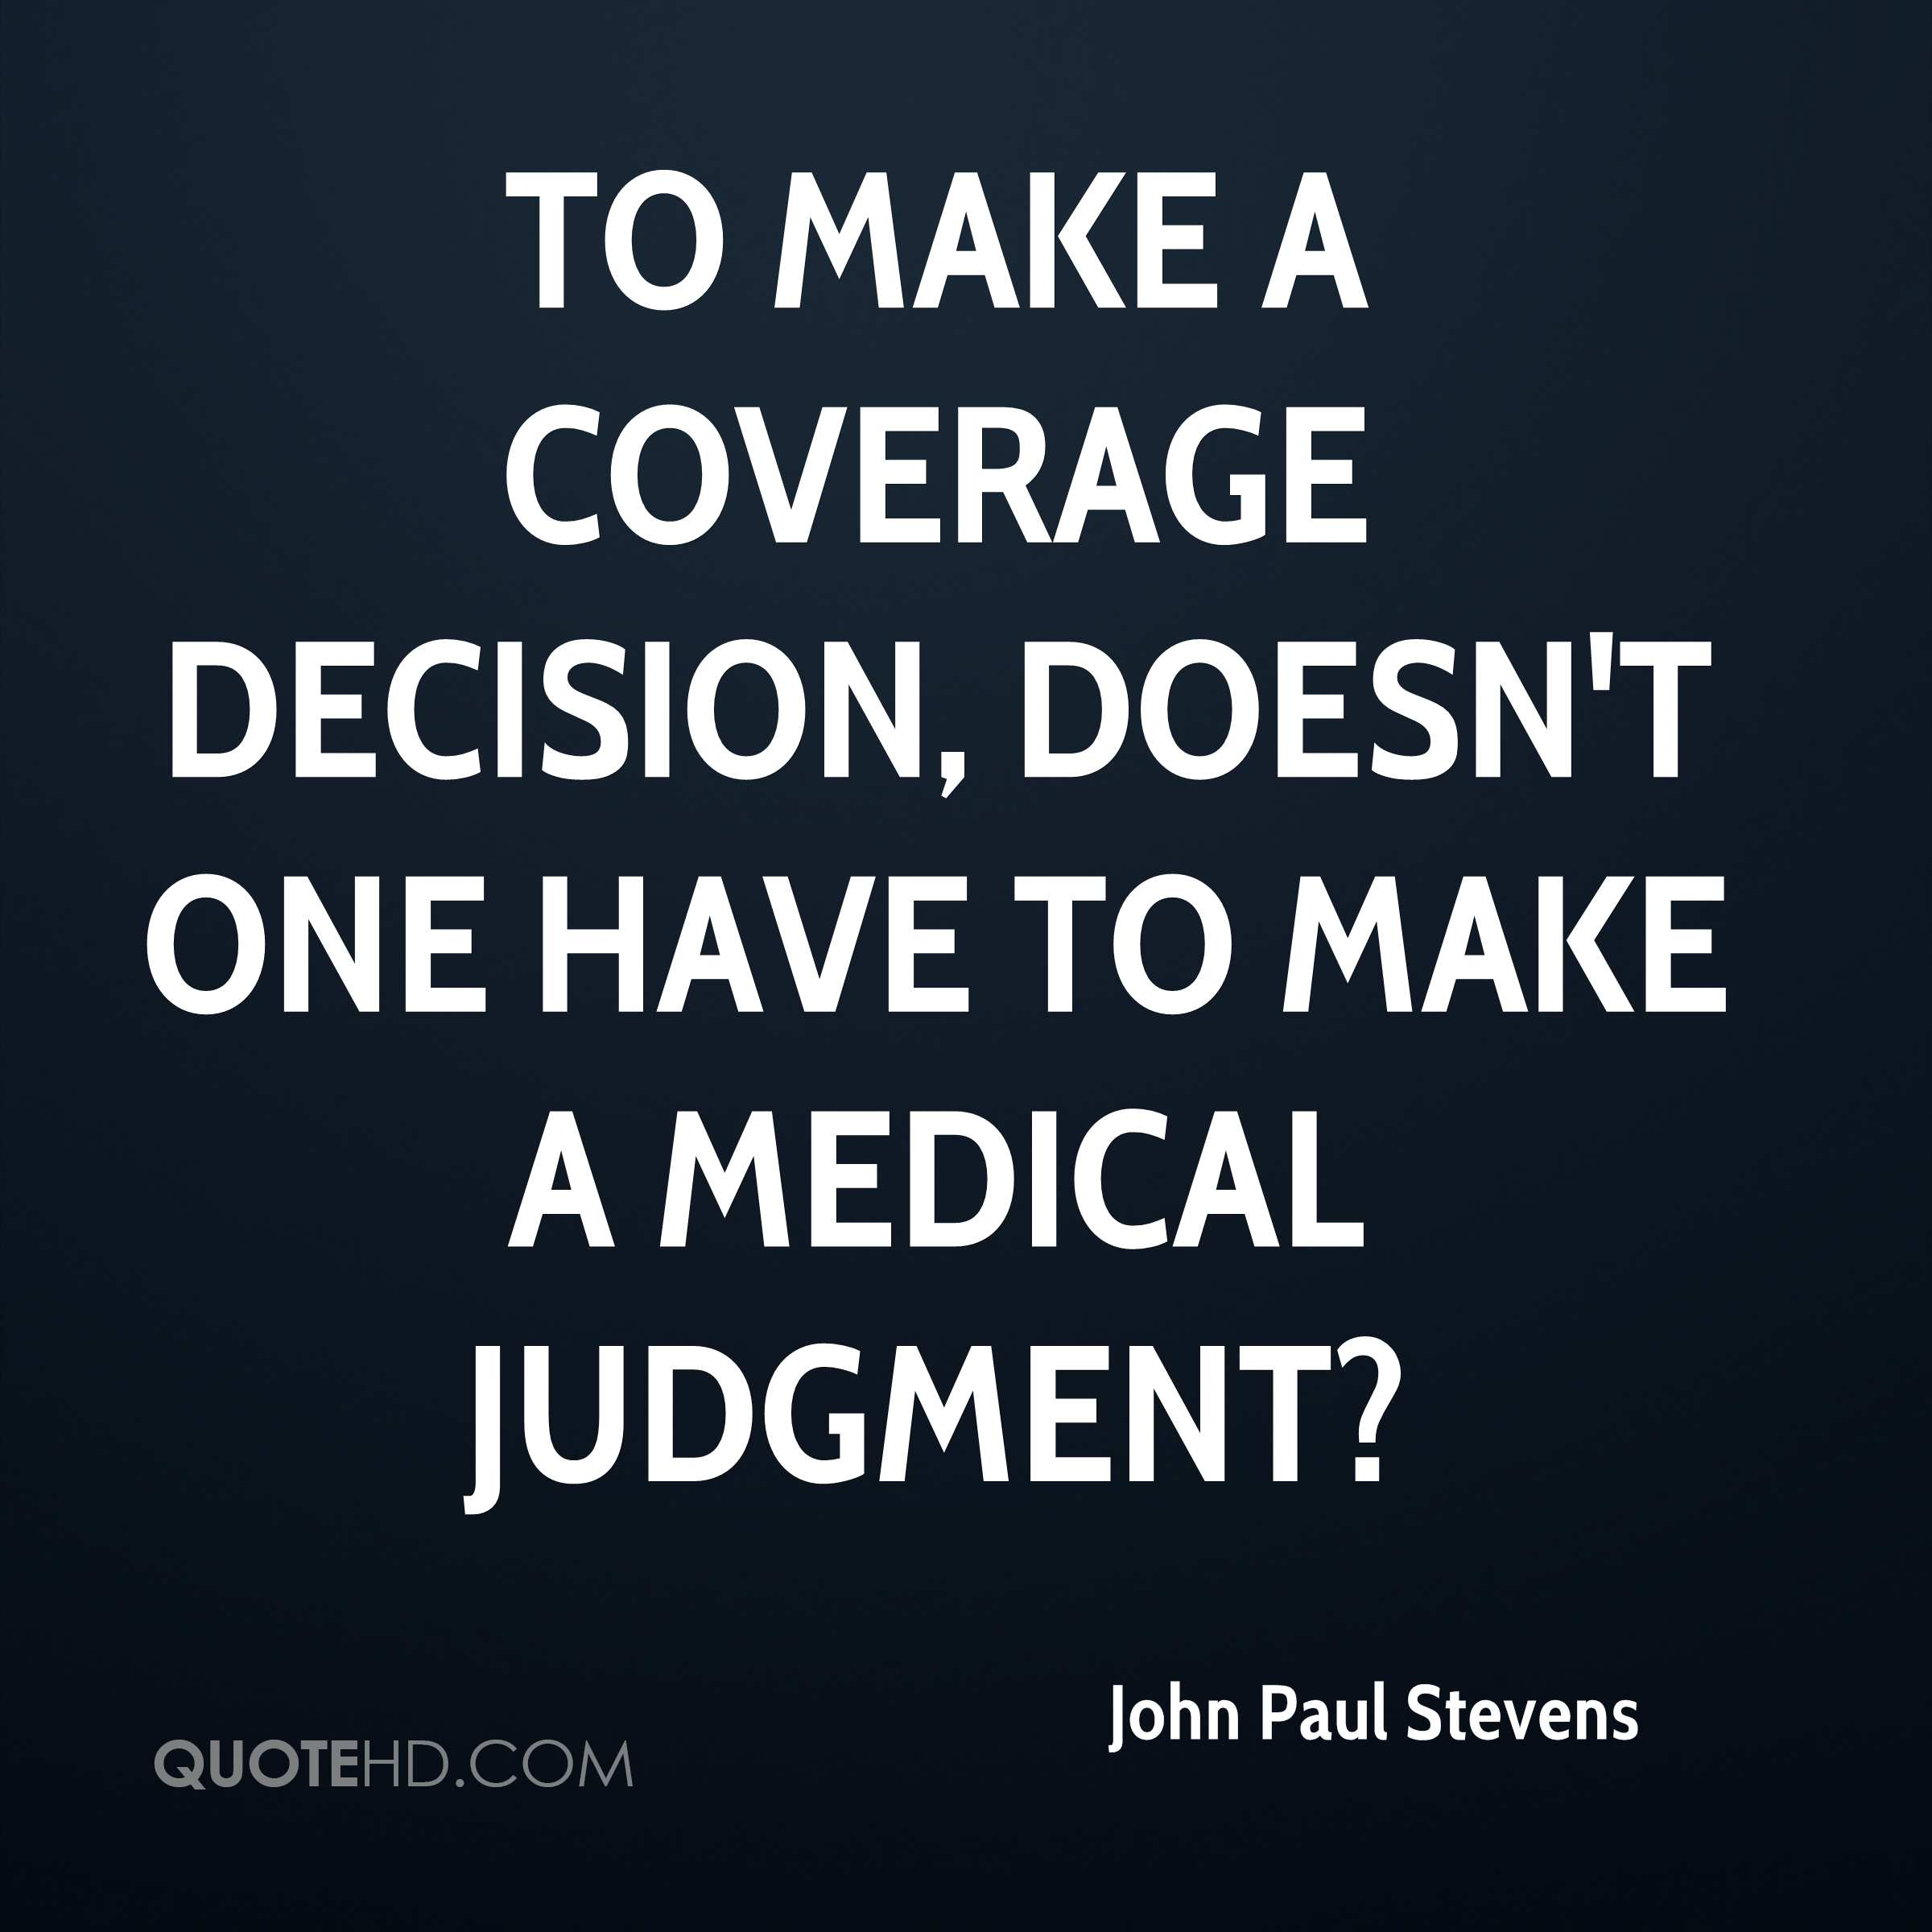 To make a coverage decision, doesn't one have to make a medical judgment?